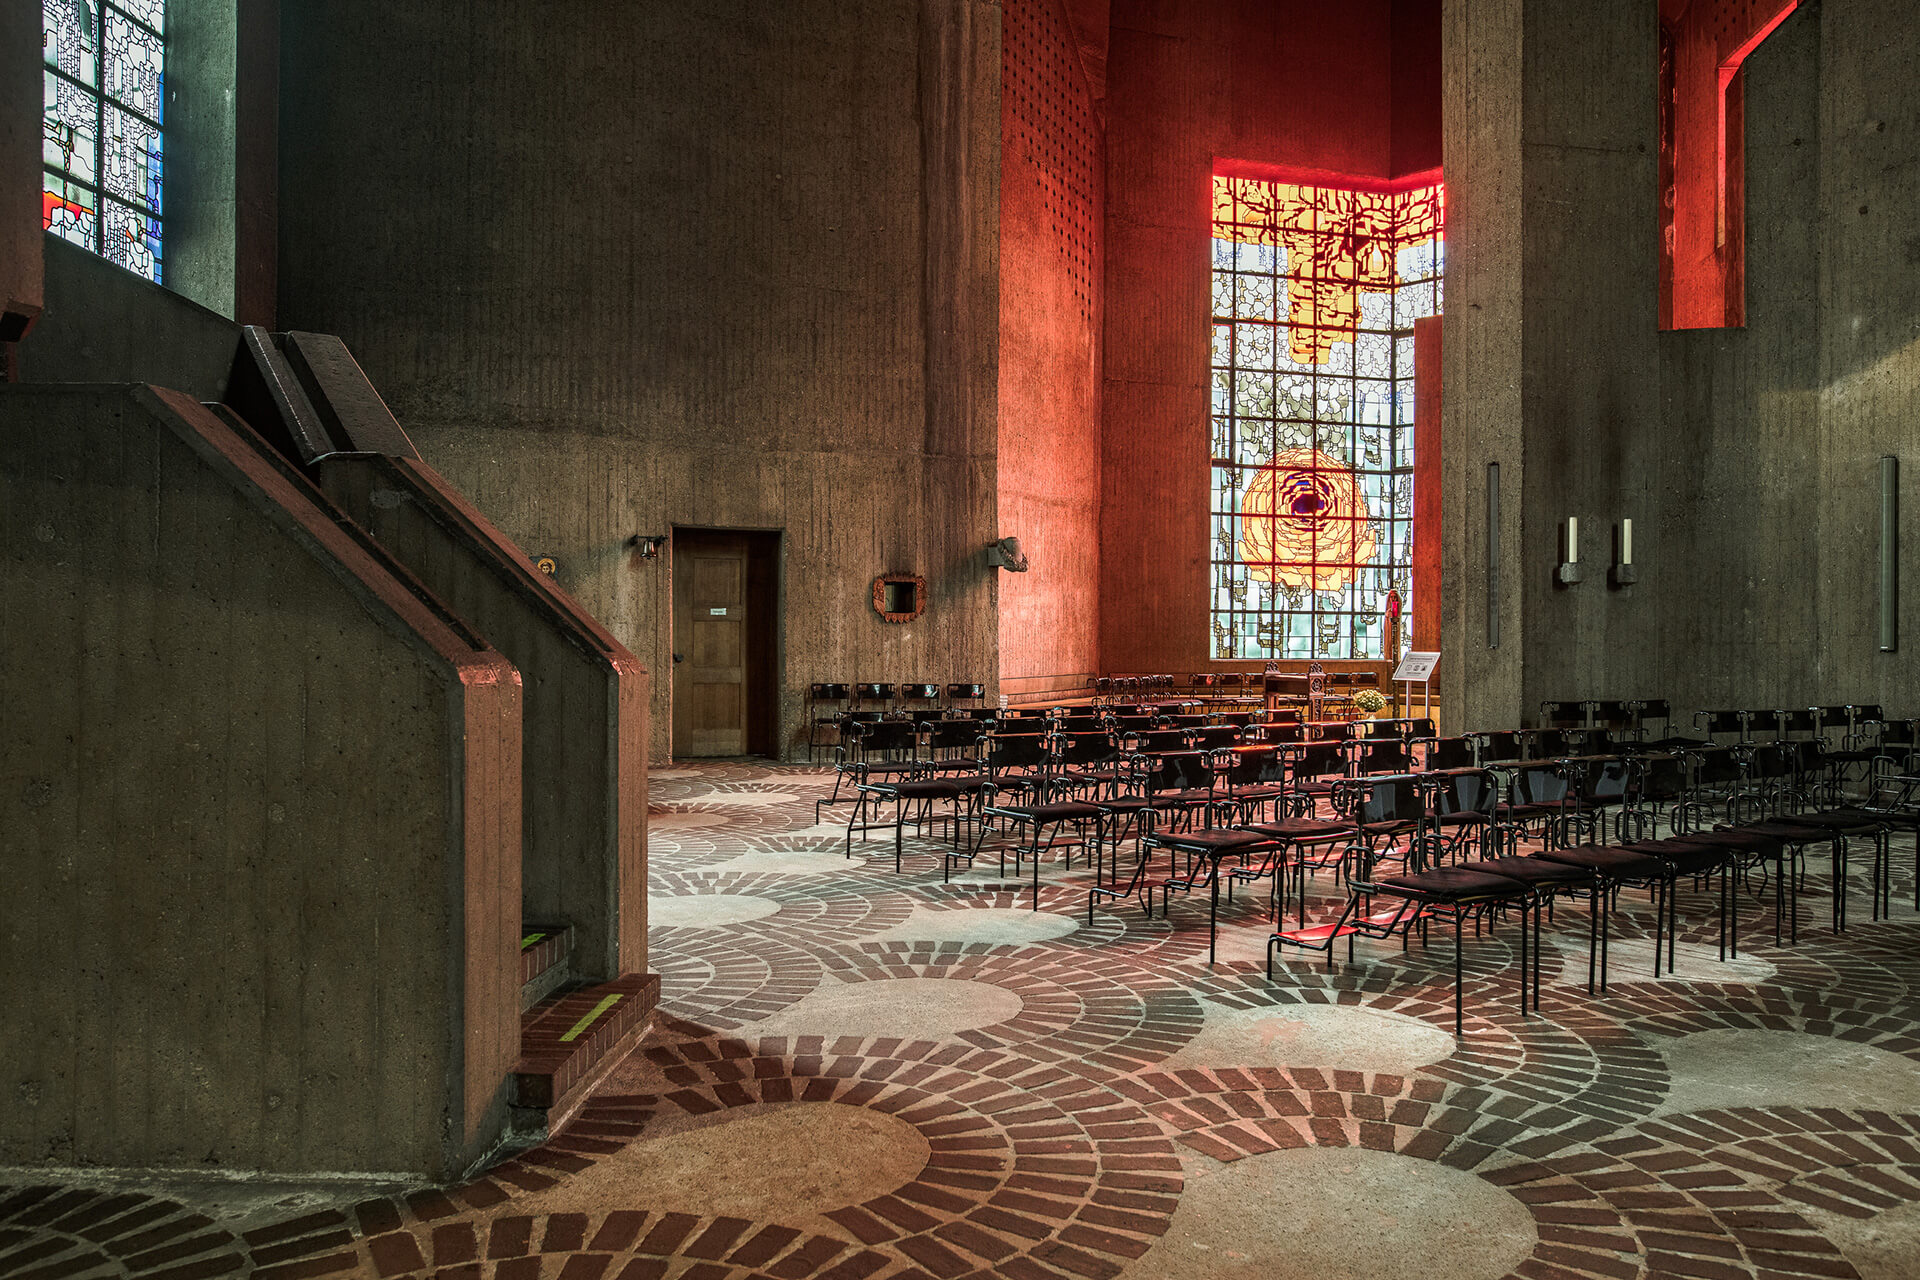 The concrete expanse of the cathedral is punctuated with windows in red stained glass that exude light and warmth | BÖHM100: The Concrete Cathedral of Neviges | Deutsches Architekturmusem (DAM) | STIRworld